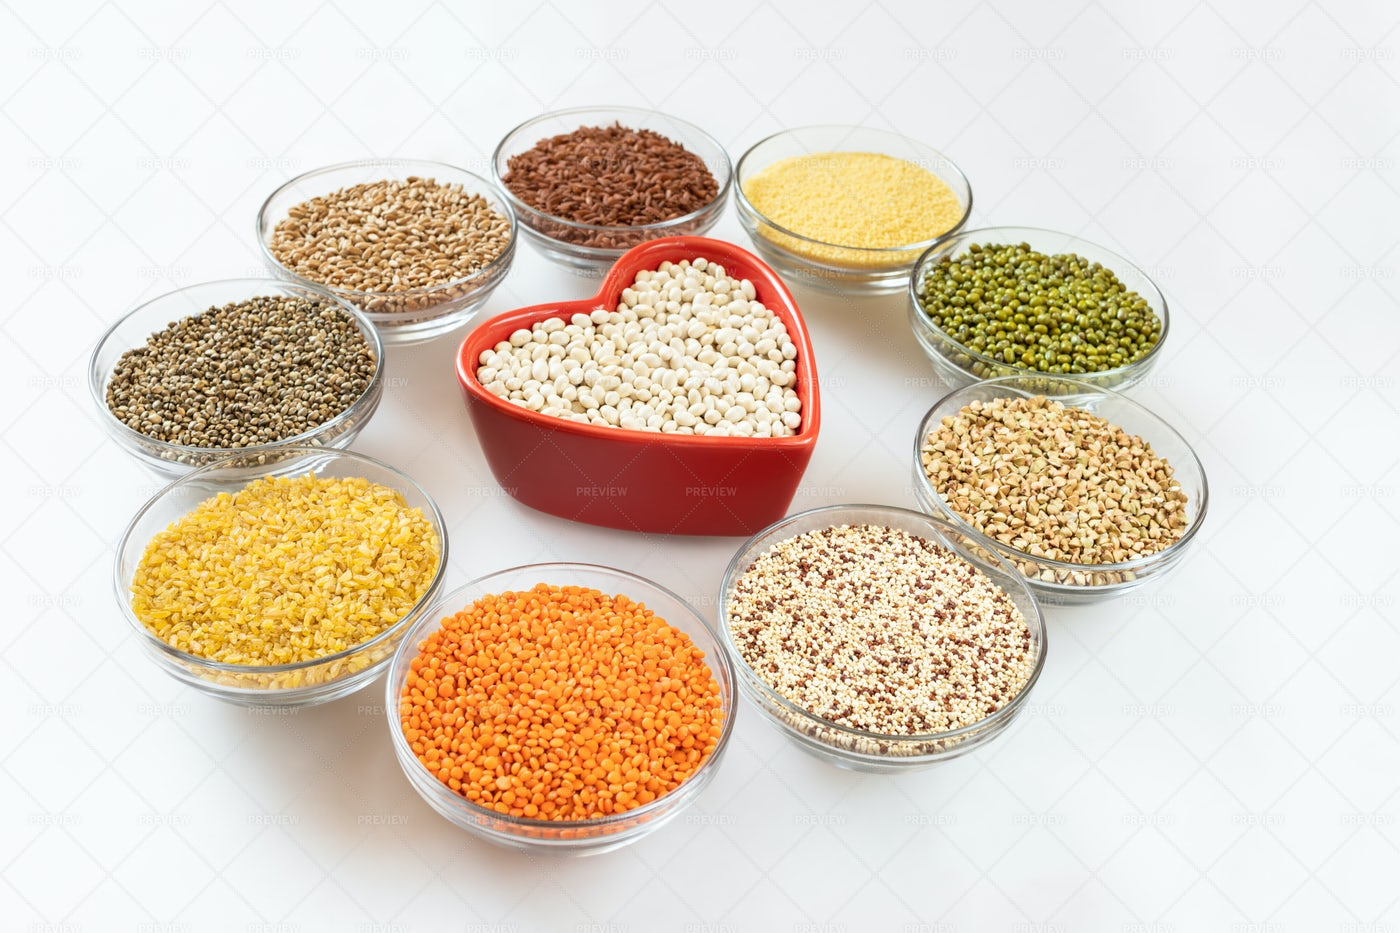 Beans, Grains And Seeds Composition: Stock Photos